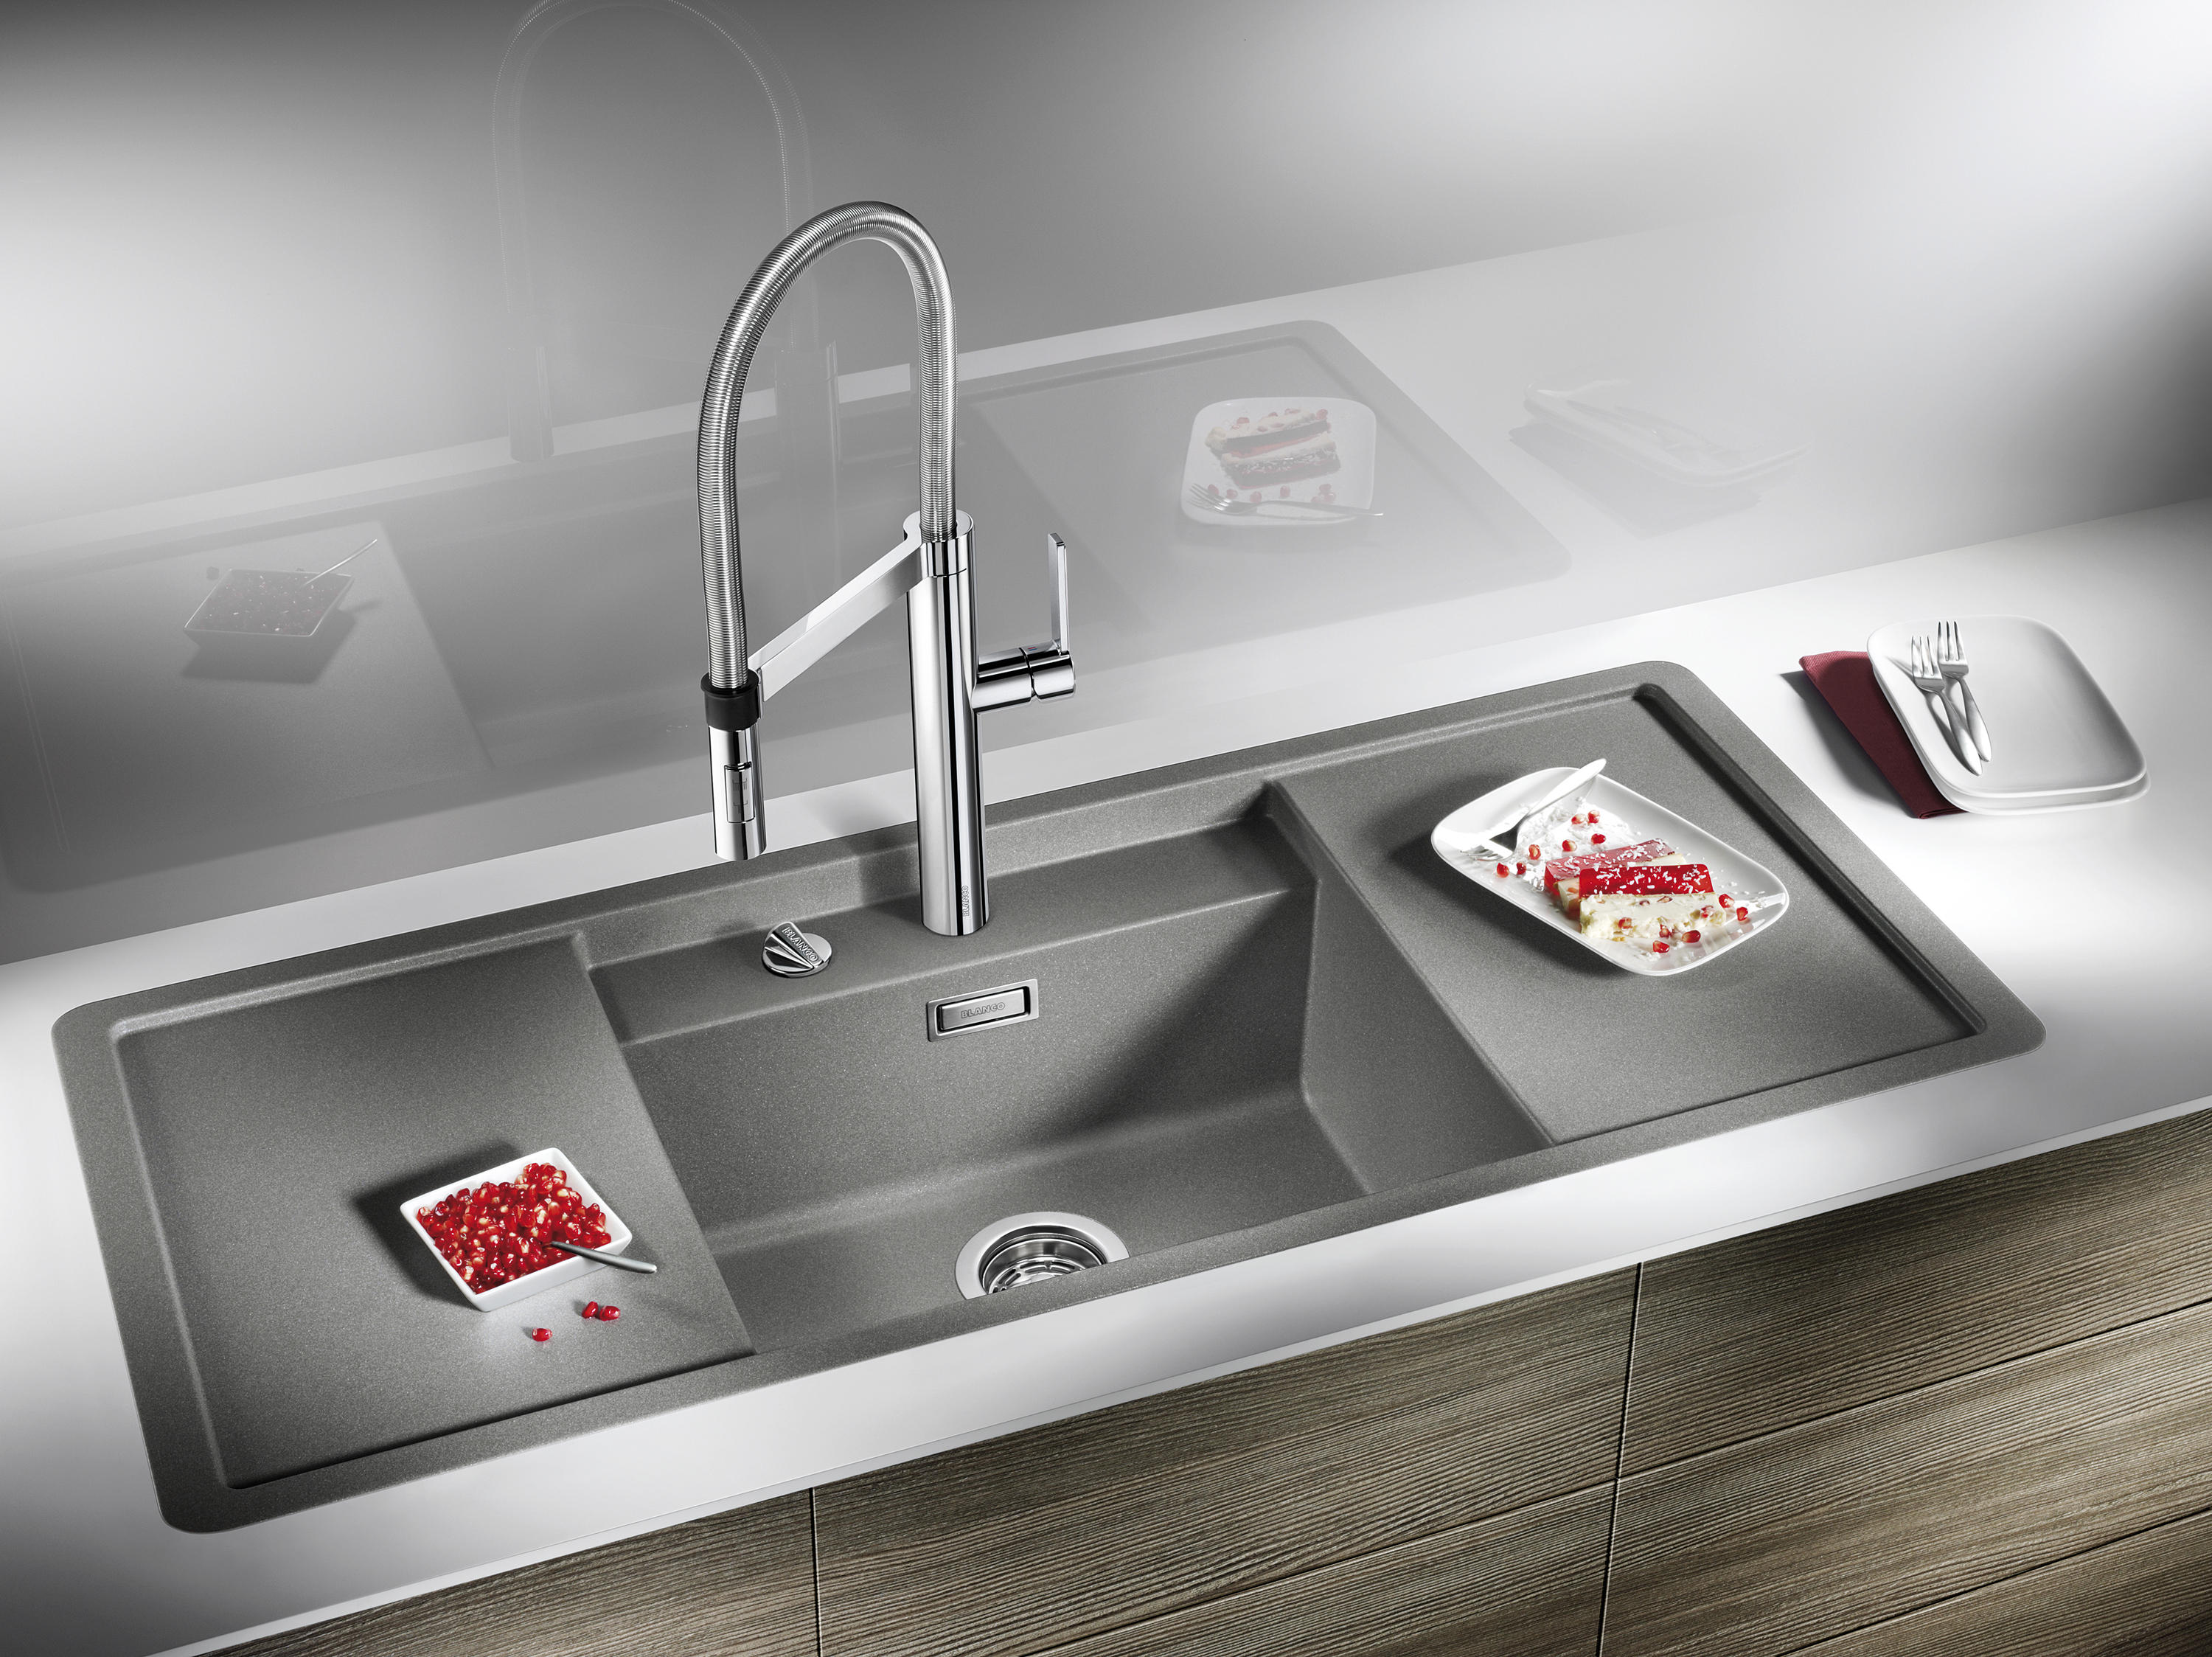 Blanco Sinks Website : BLANCO ALAROS 6 S SILGRANIT Anthracite - Kitchen sinks by Blanco ...